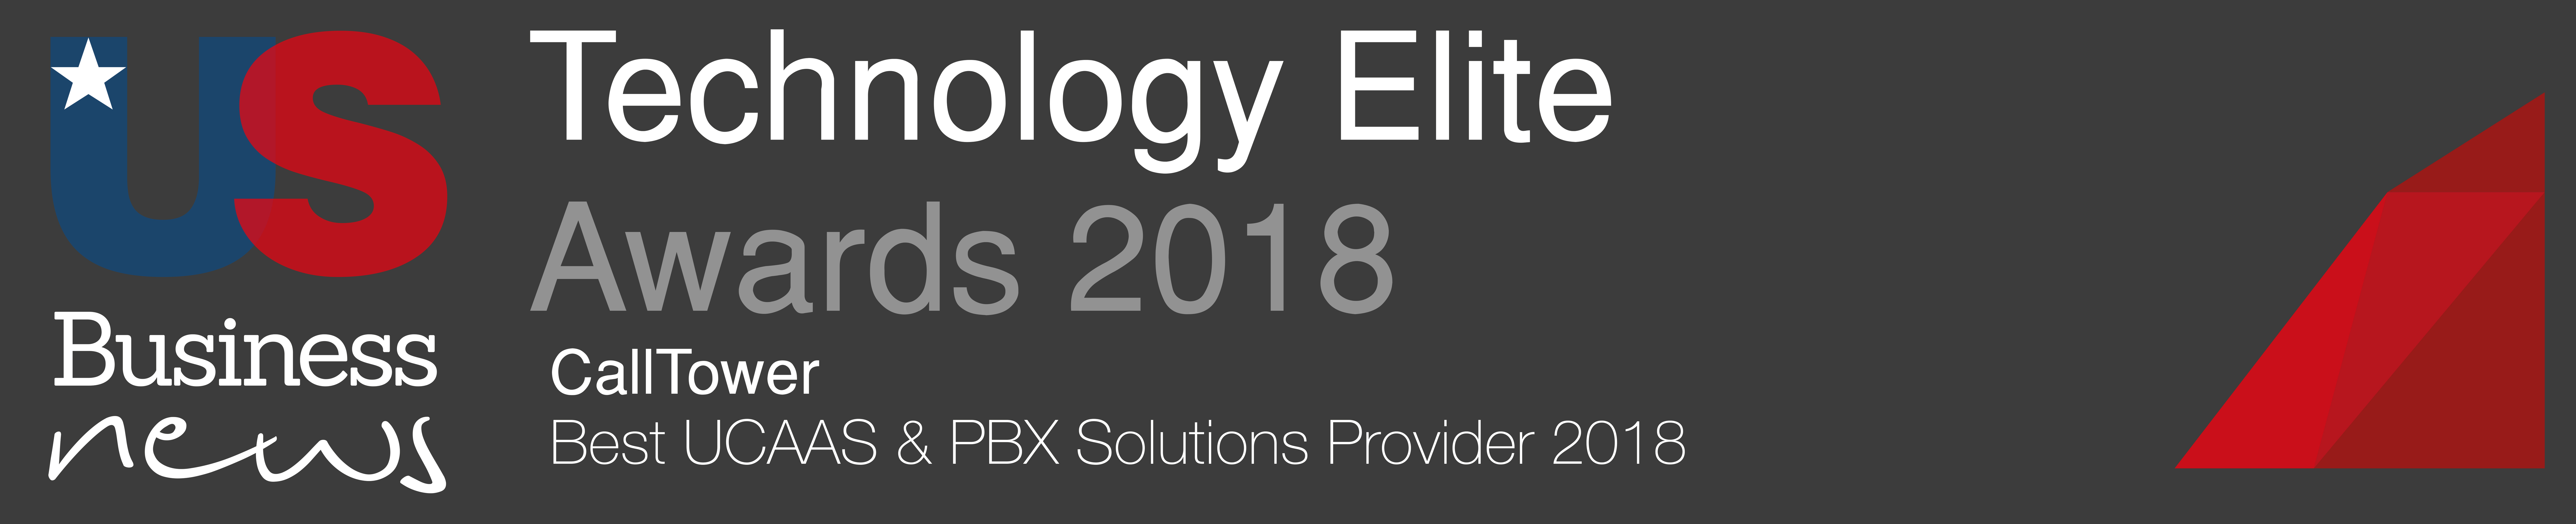 CallTower Named Best UCaaS and PBX Solutions Provider 2018